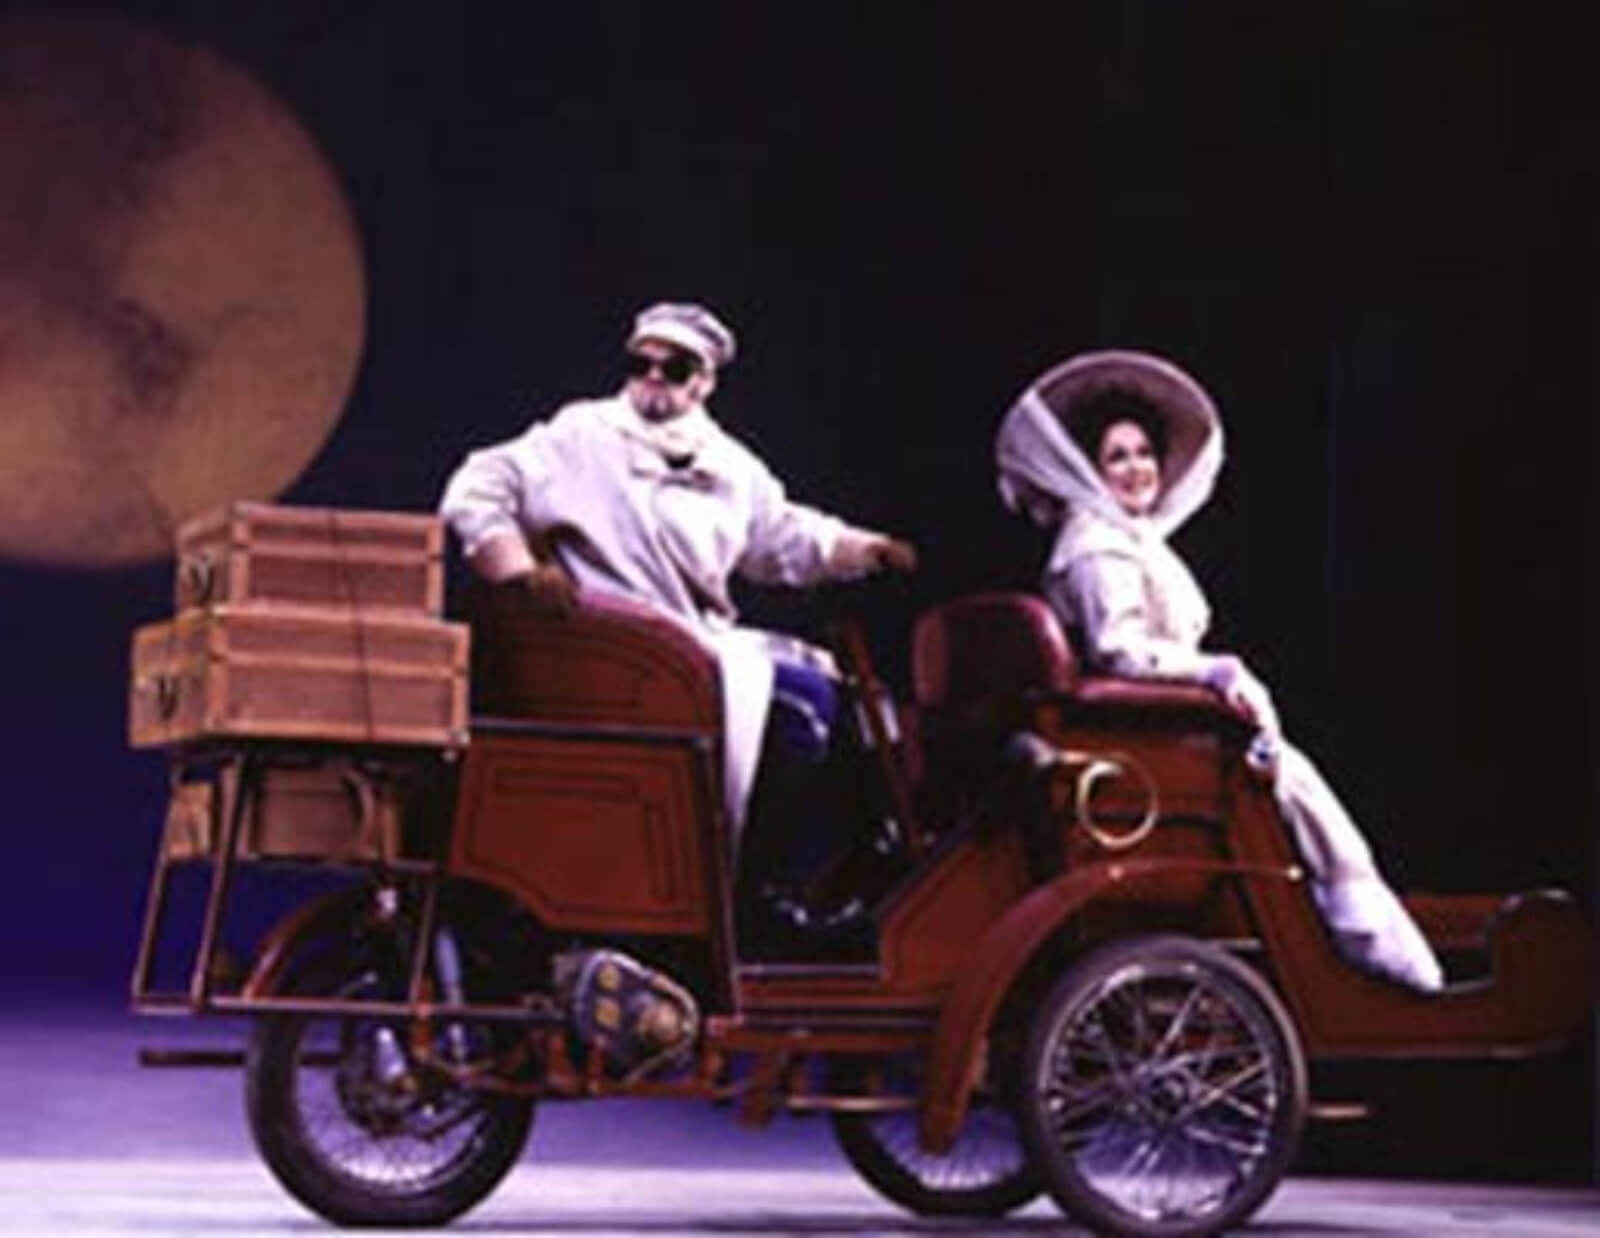 Marc Kudisch as Count Carl-Magnus driving Charlotte. He is in a long white coat and she is dressed in a white traveling gown.